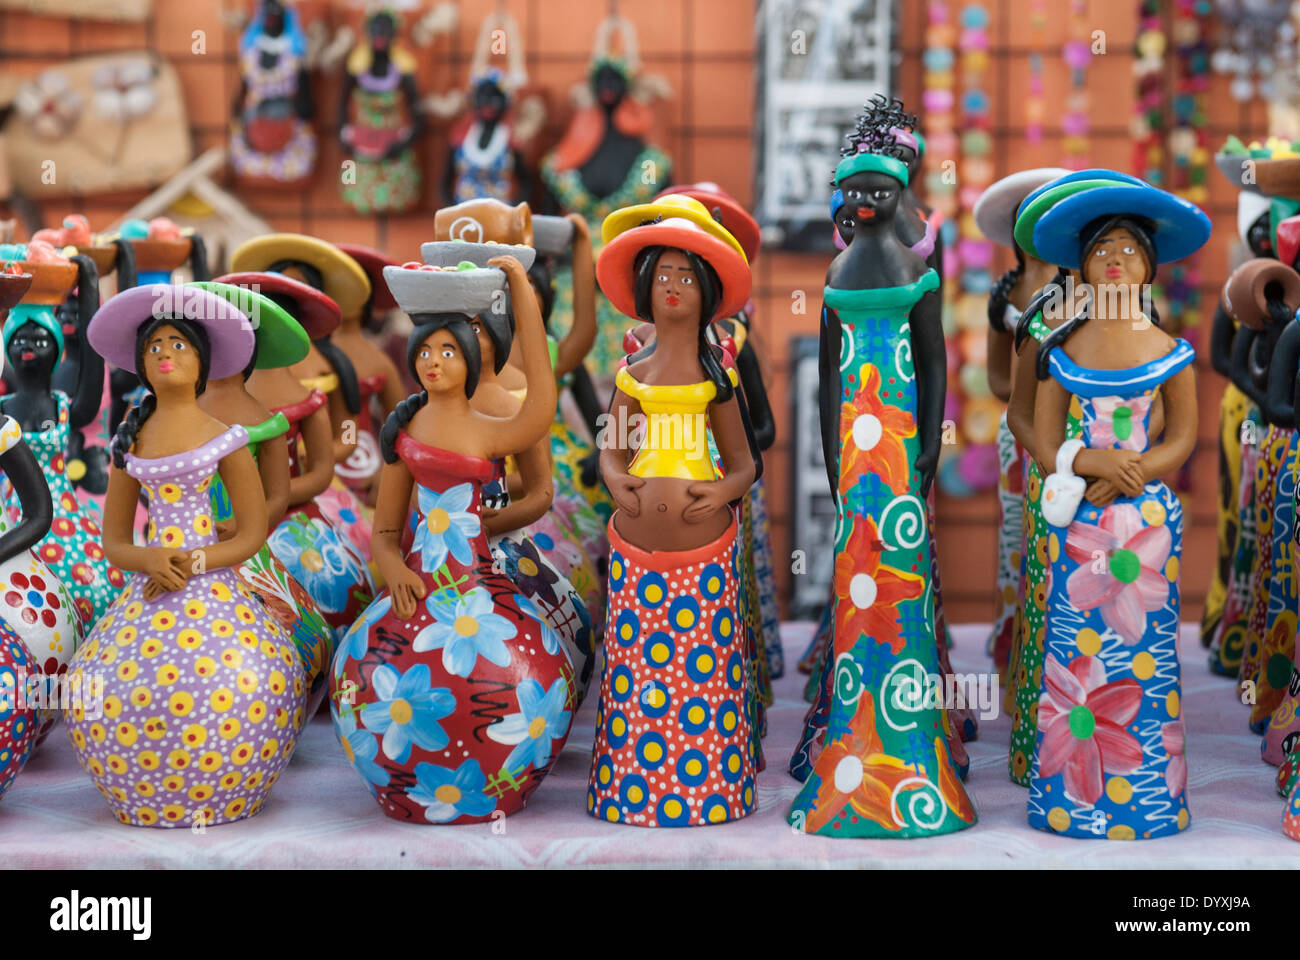 Artesanato Uniart Vinhedo ~ Olinda, Pernambuco State, Brazil Tourist souvenir colourful Stock Photo, Royalty Free Image